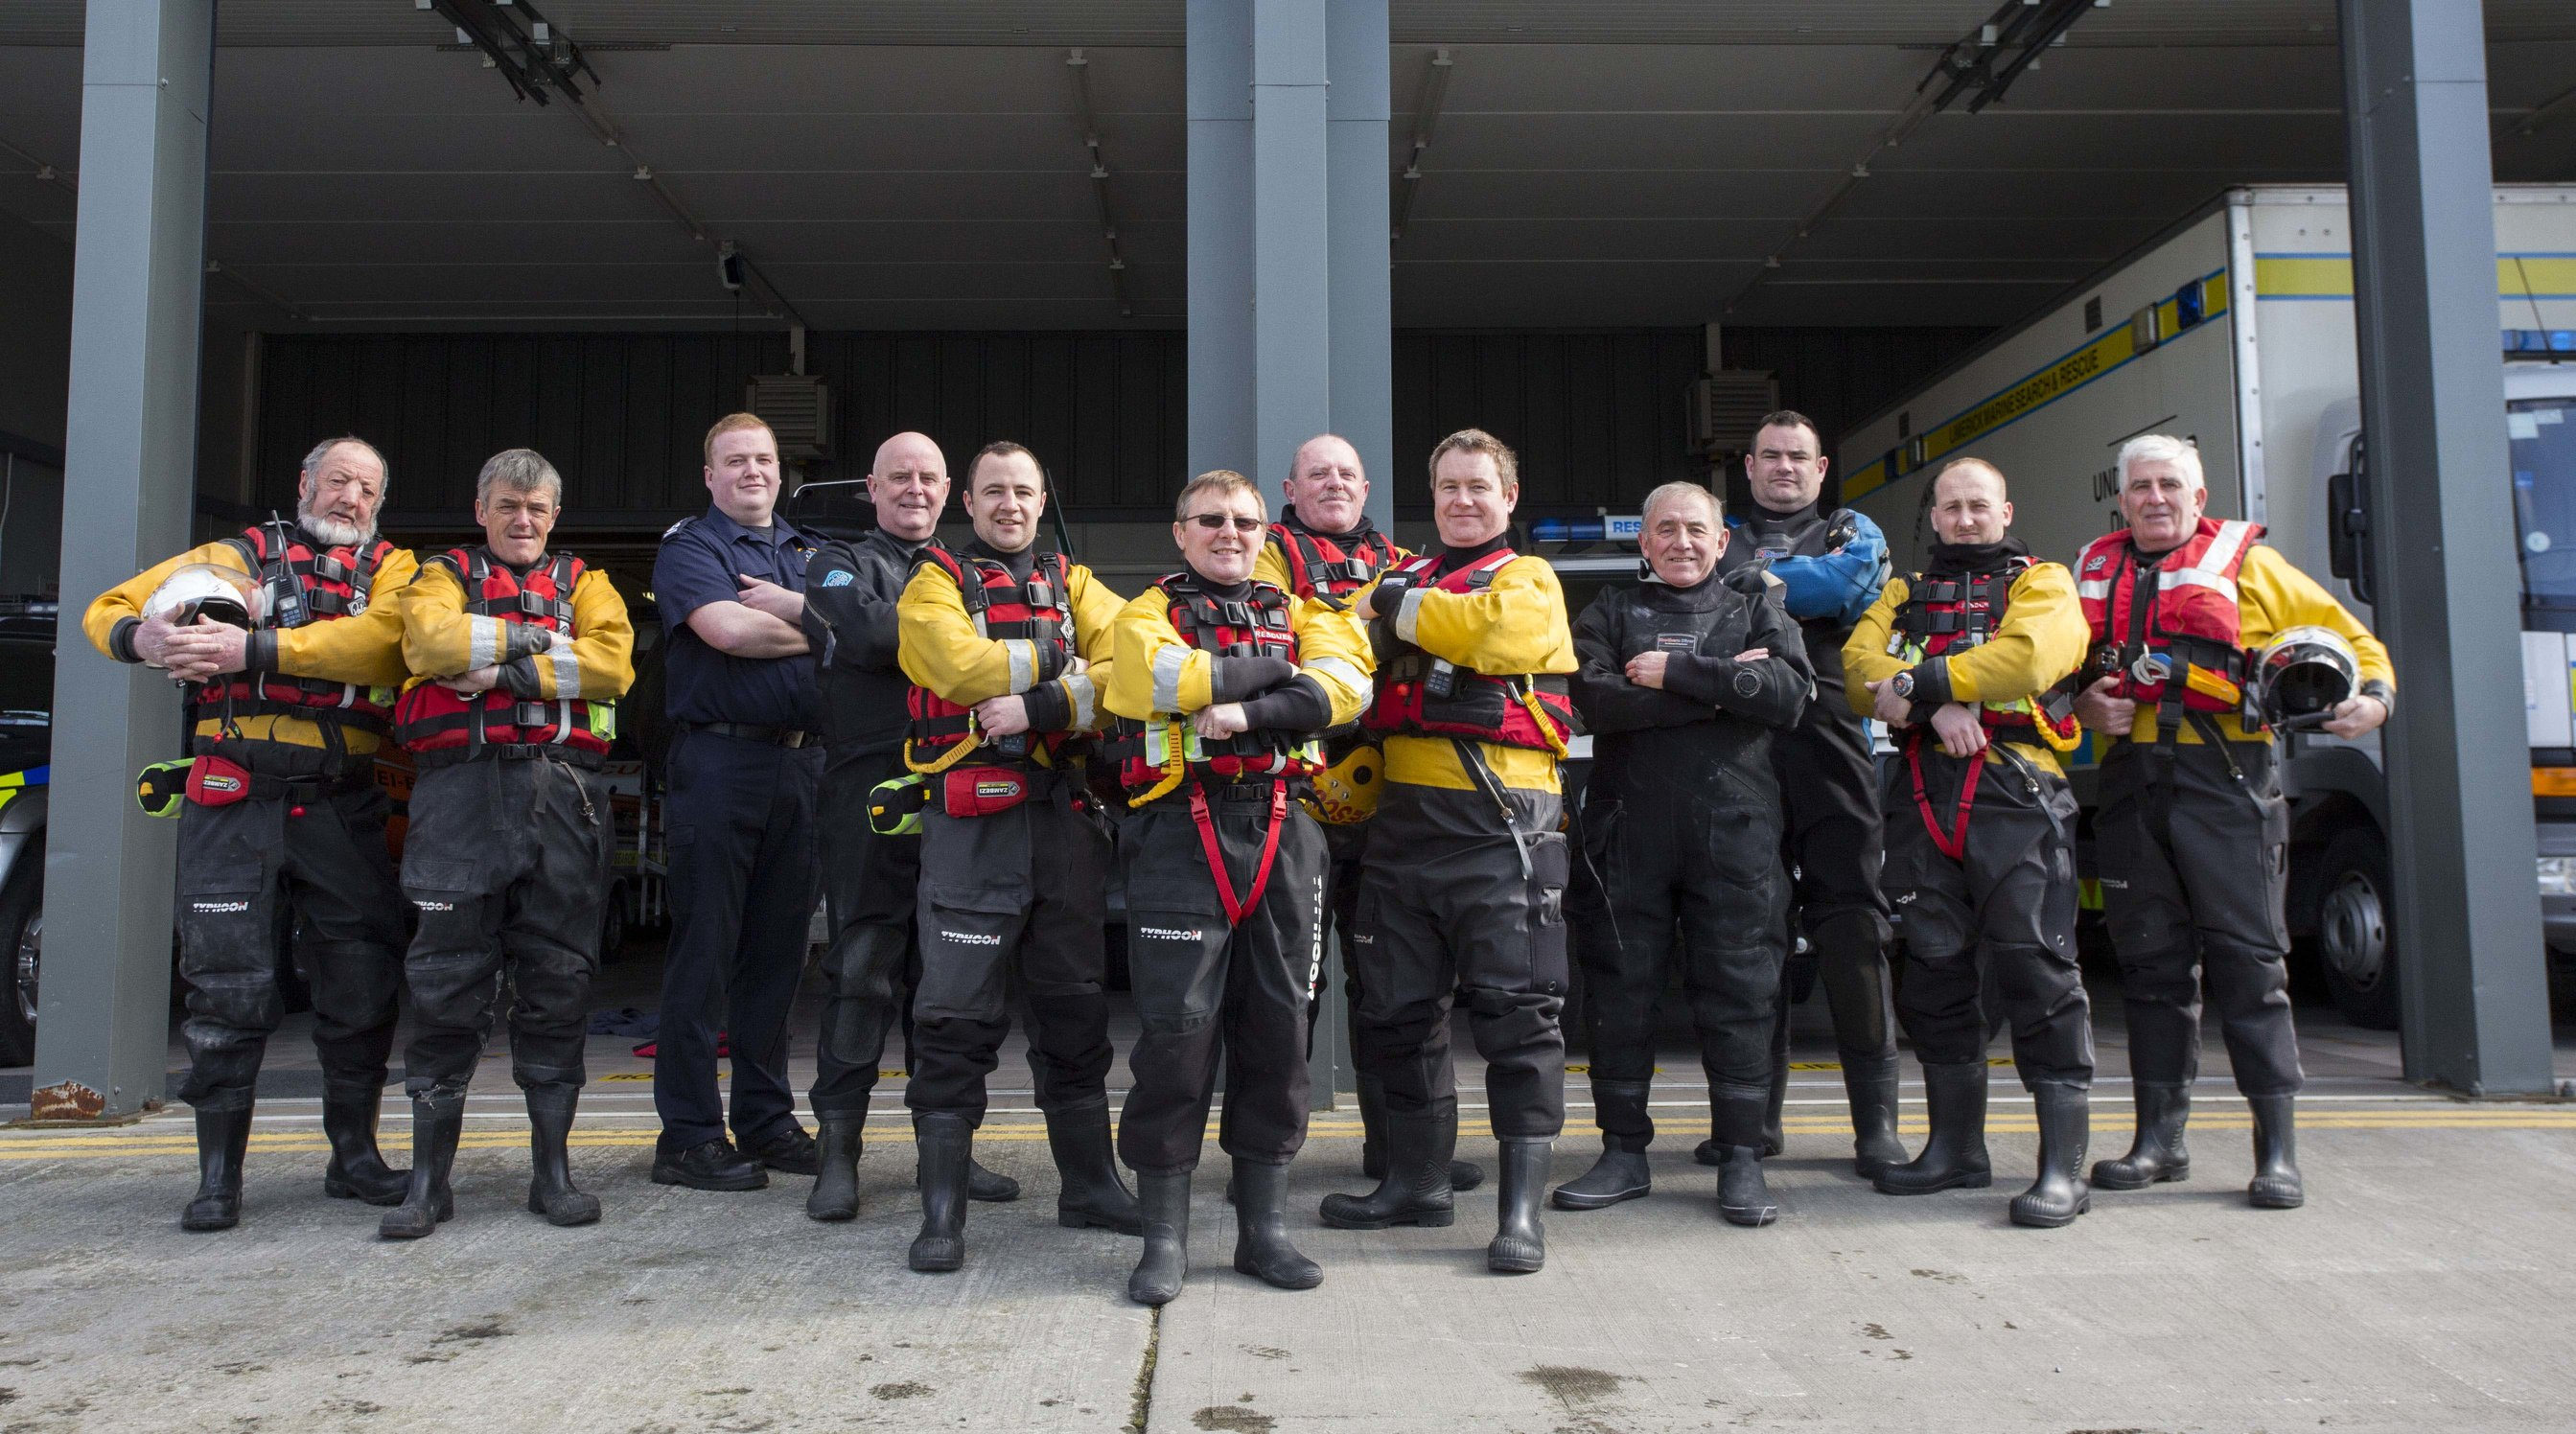 Limerick Marine Search and Rescue